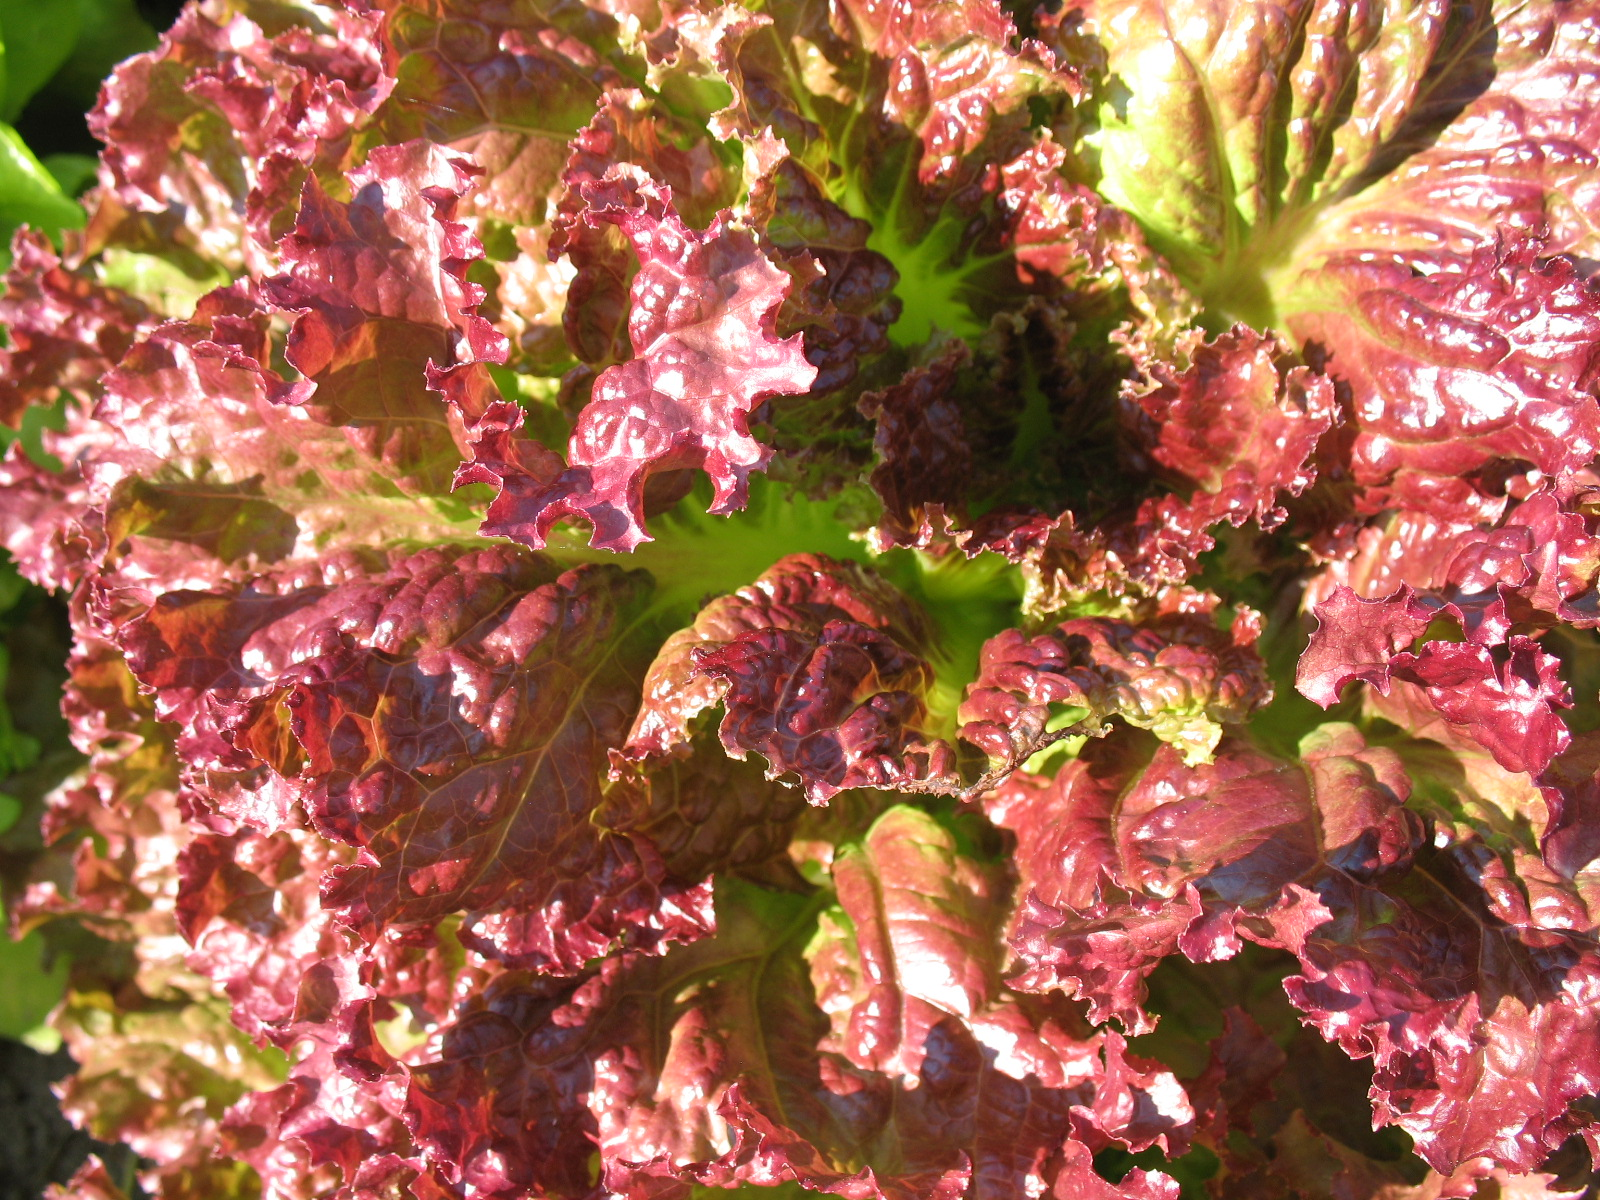 New Red Fire lettuce. Photo by Bridget Aleshire